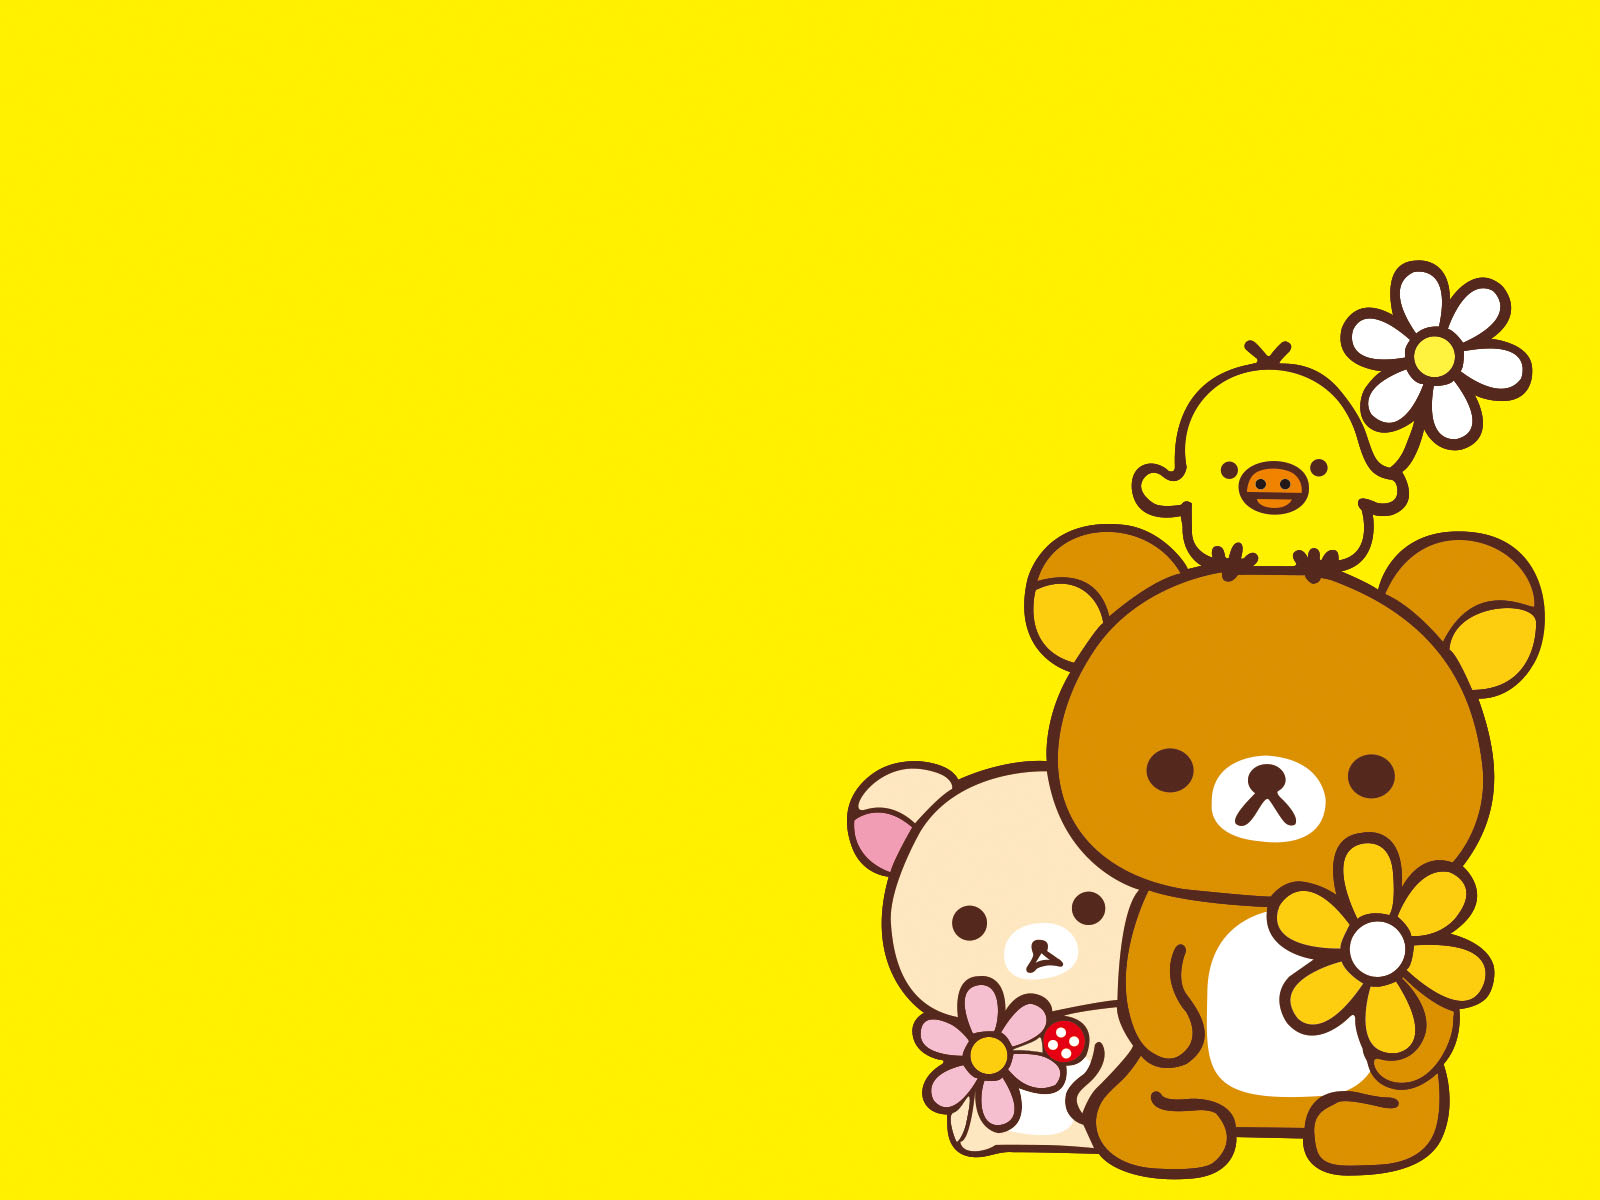 easily bear animal backgrounds animals cartoon yellow